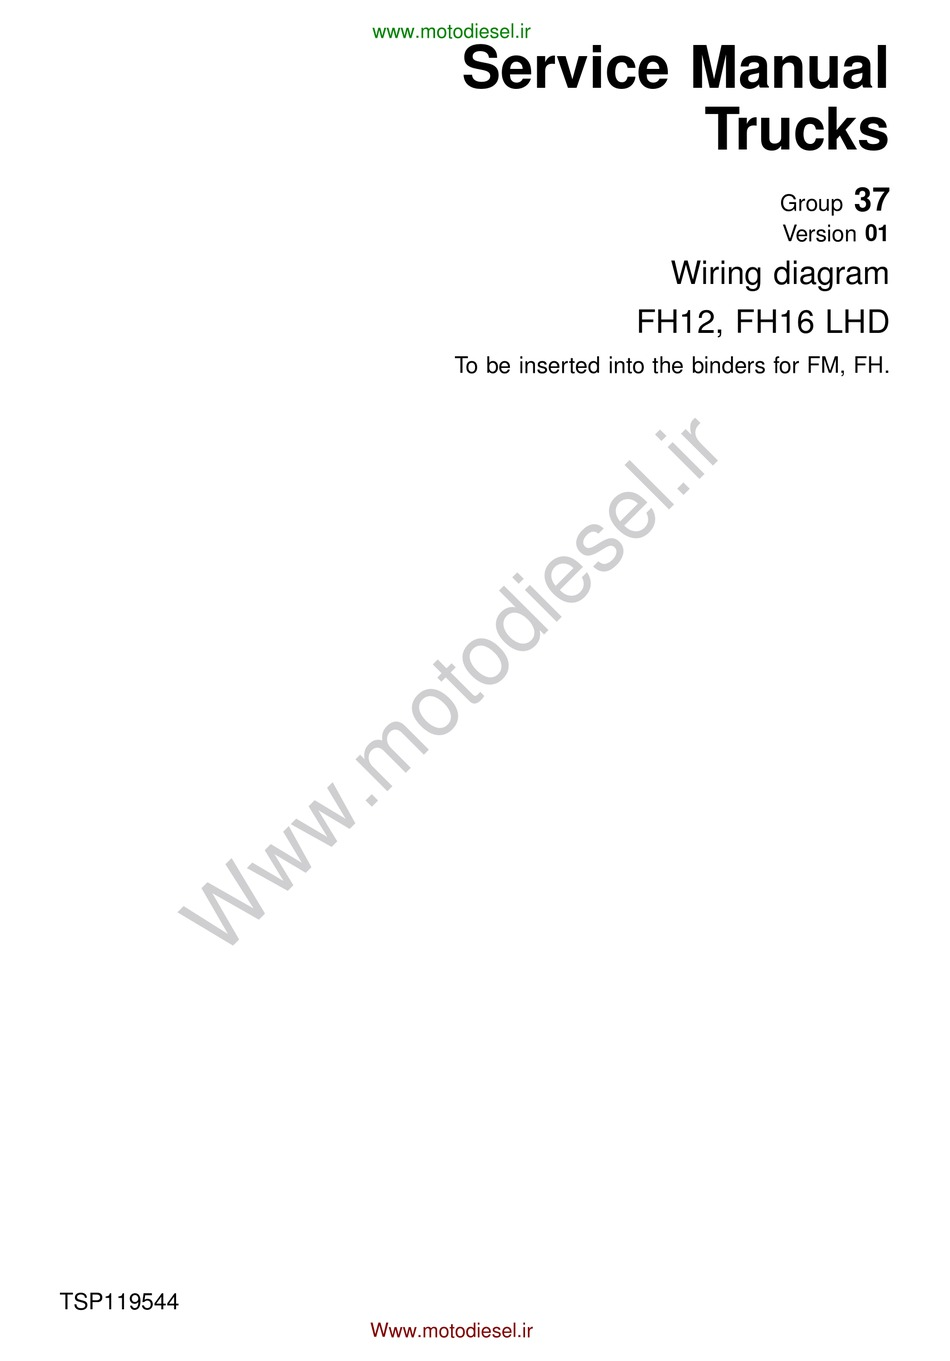 VOLVO FH12 LHD WIRING DIAGRAM Pdf Download | ManualsLib | Volvo Fh12 Version 2 Wiring Diagram |  | ManualsLib